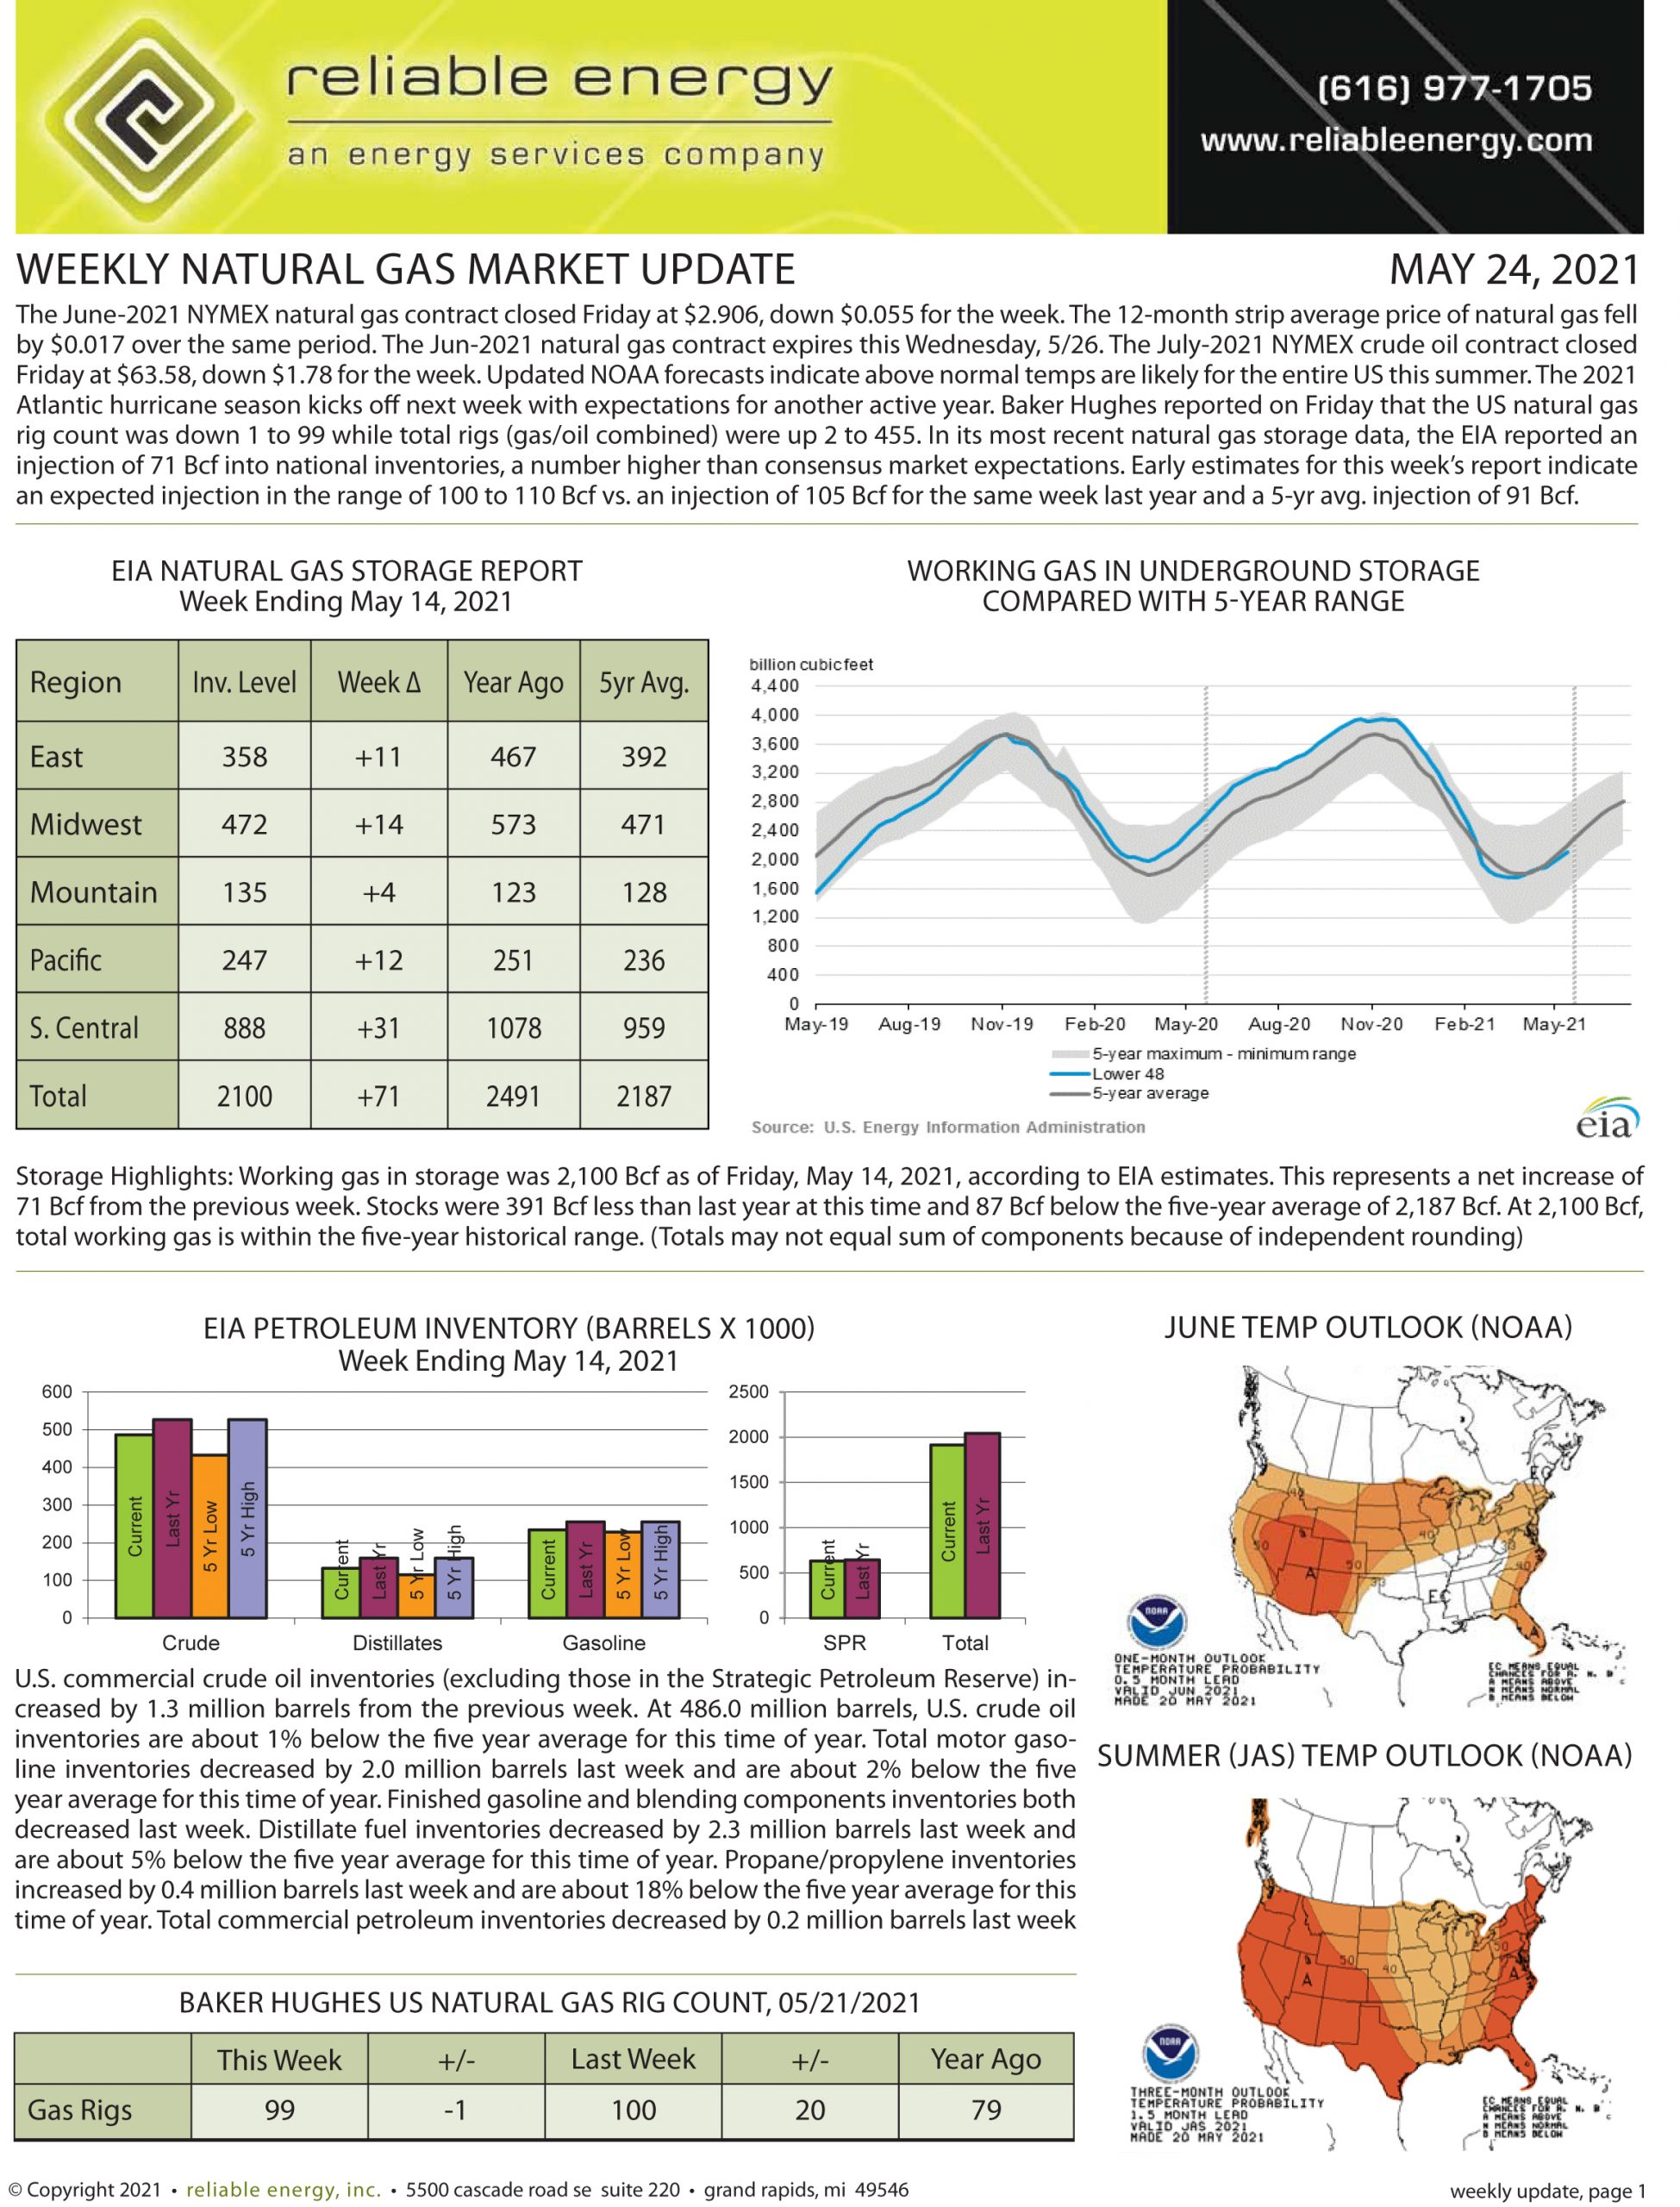 Natural Gas Market Update – May 24, 2021